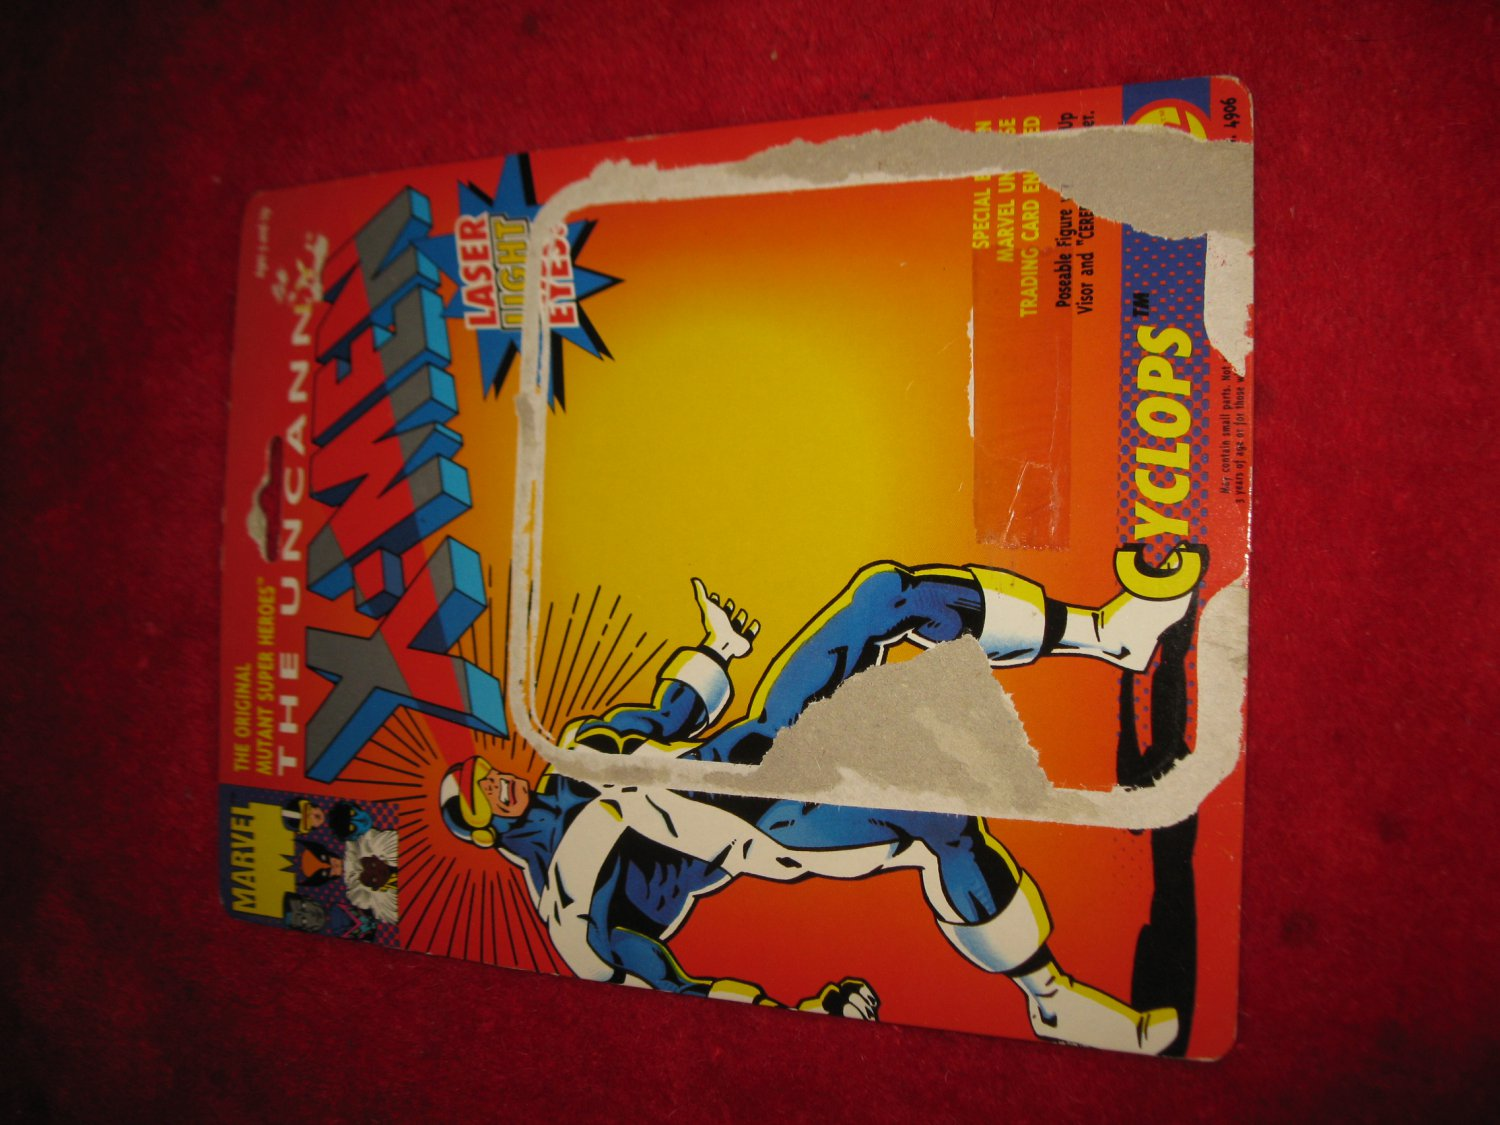 1991 Toybiz / Marvel Comics X-Men Action Figure: Cyclops - Original Cardboard Packaging Cardback